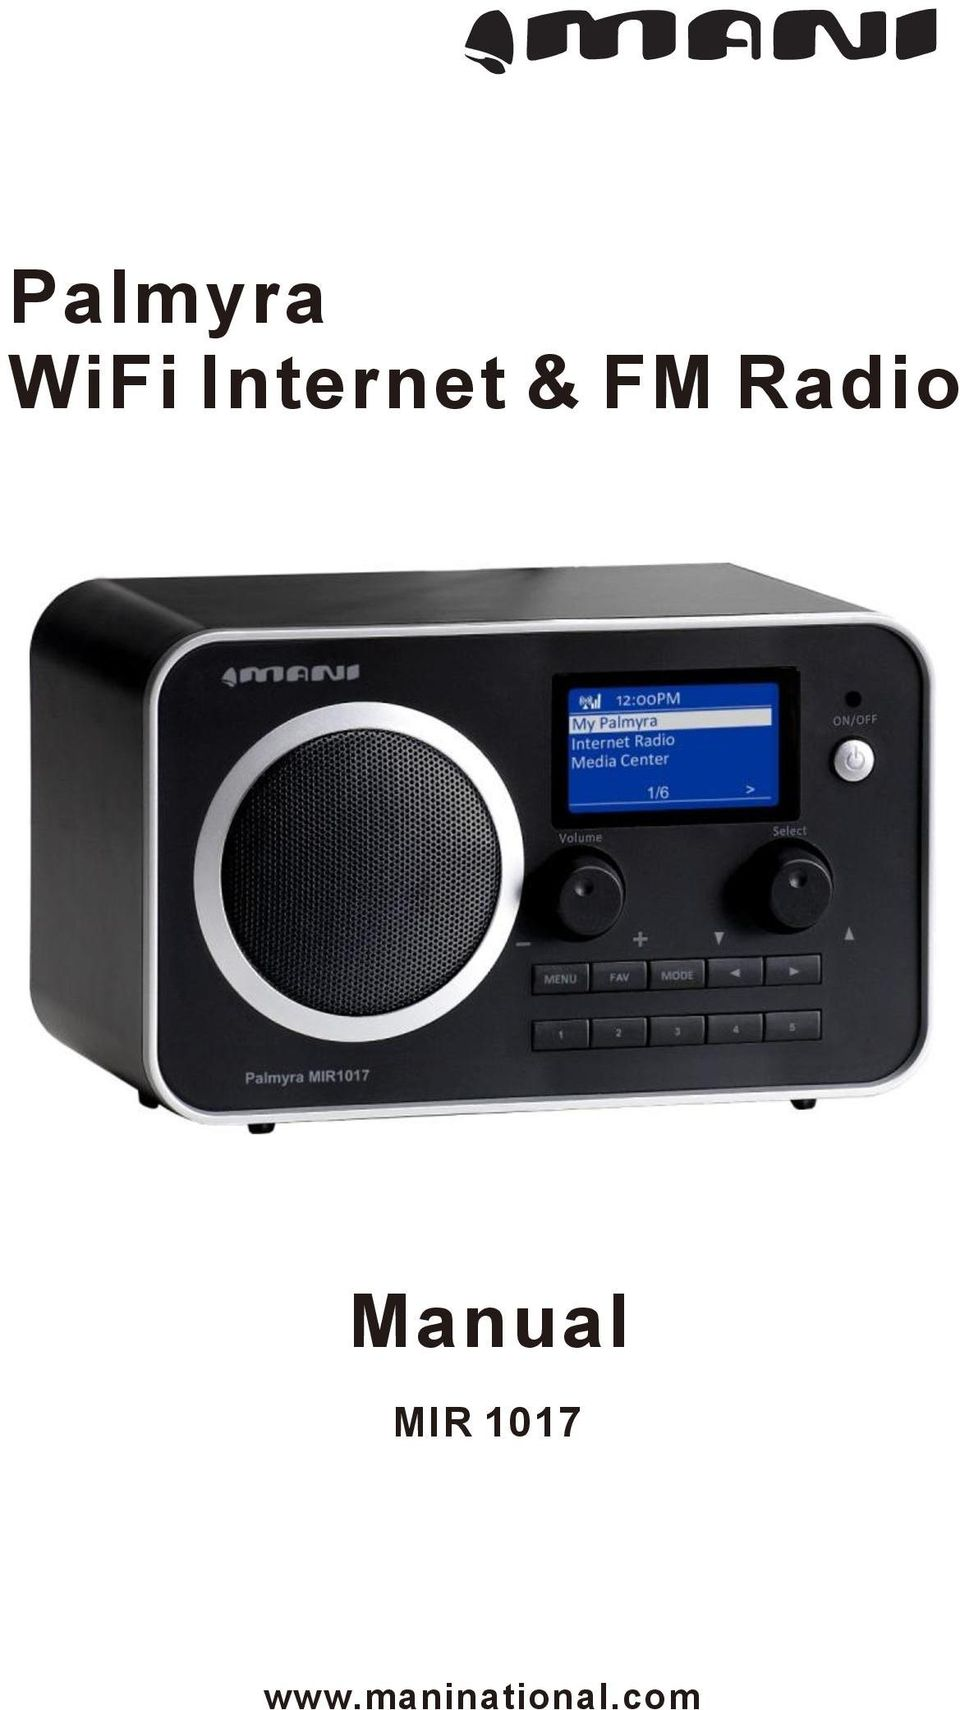 Radio Manual MIR